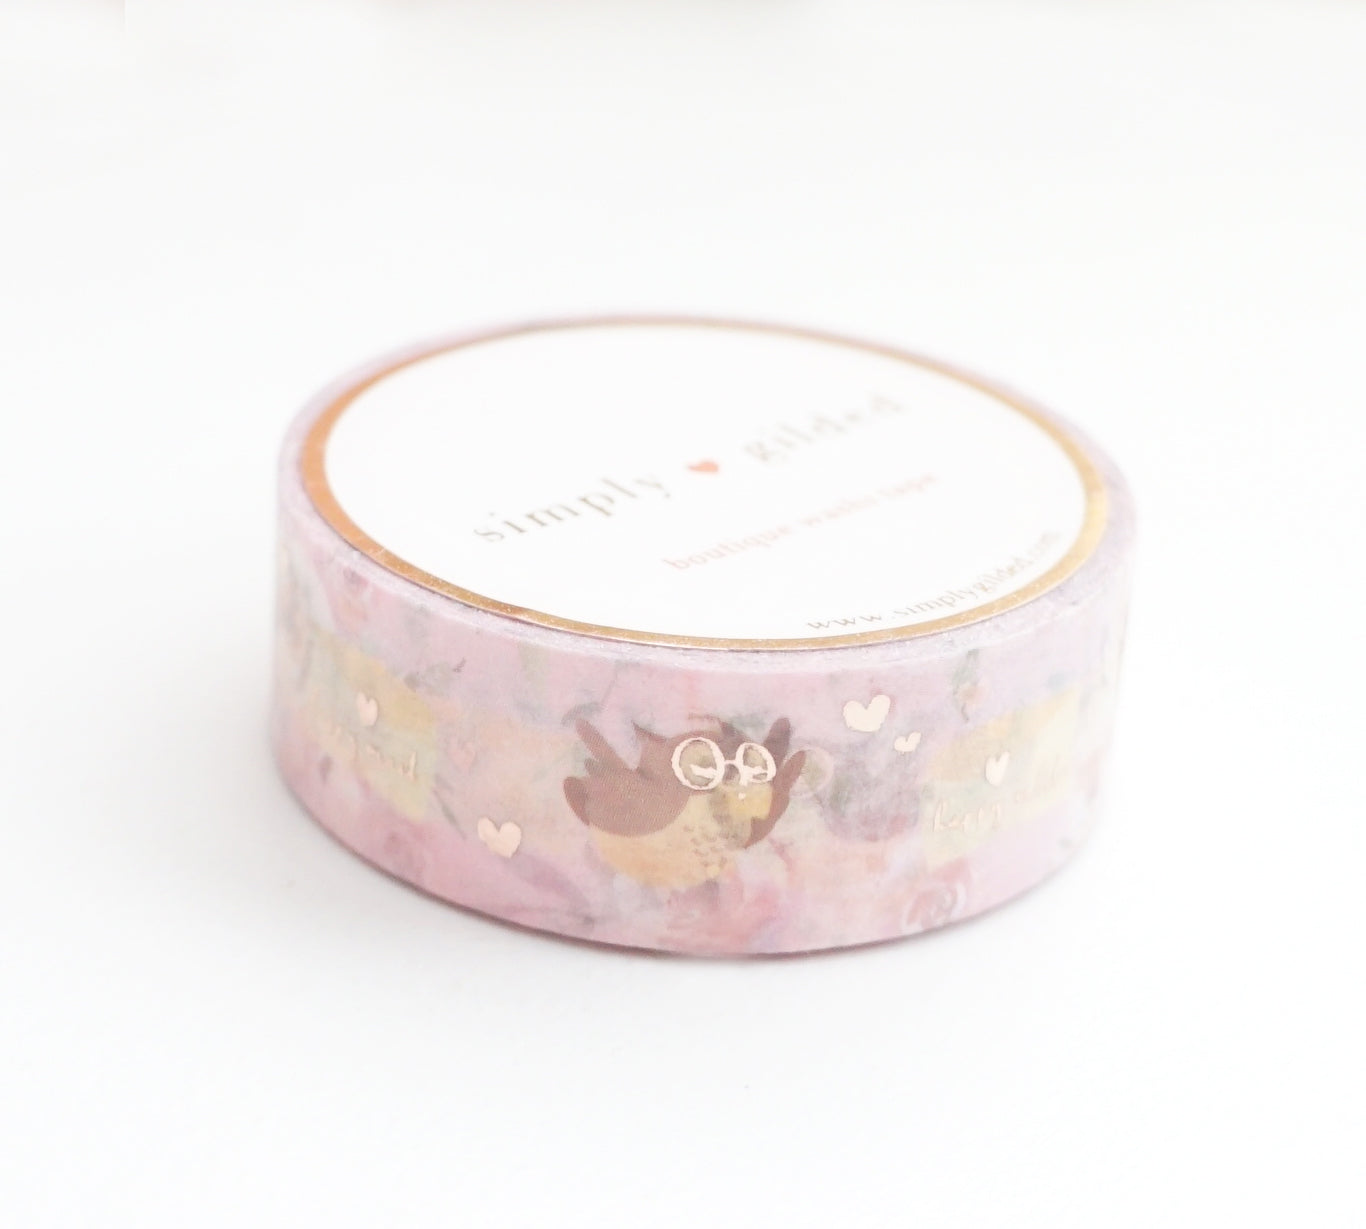 WASHI TAPE 15mm - Valentine's HAPPY MAIL OWL + rose gold foil (January 10 Release)